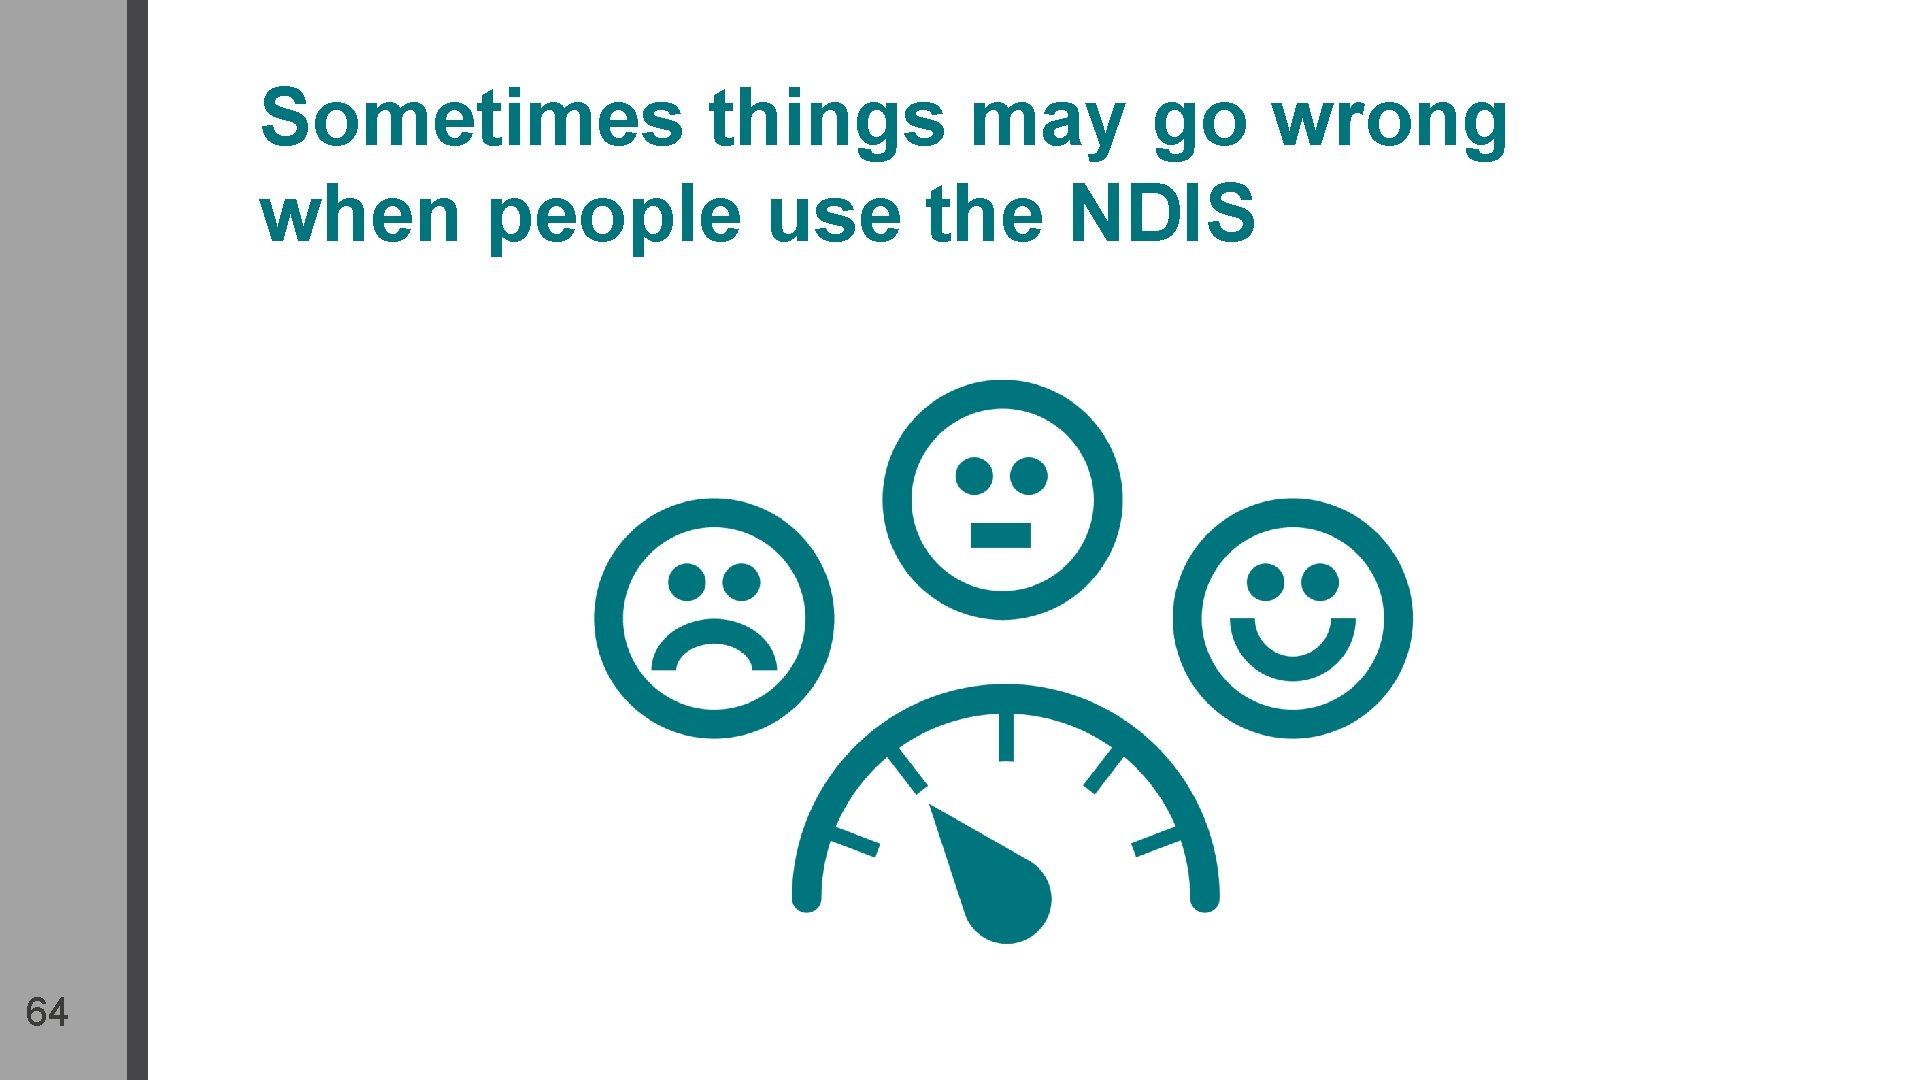 Sometimes things may go wrong when people use the NDIS 64